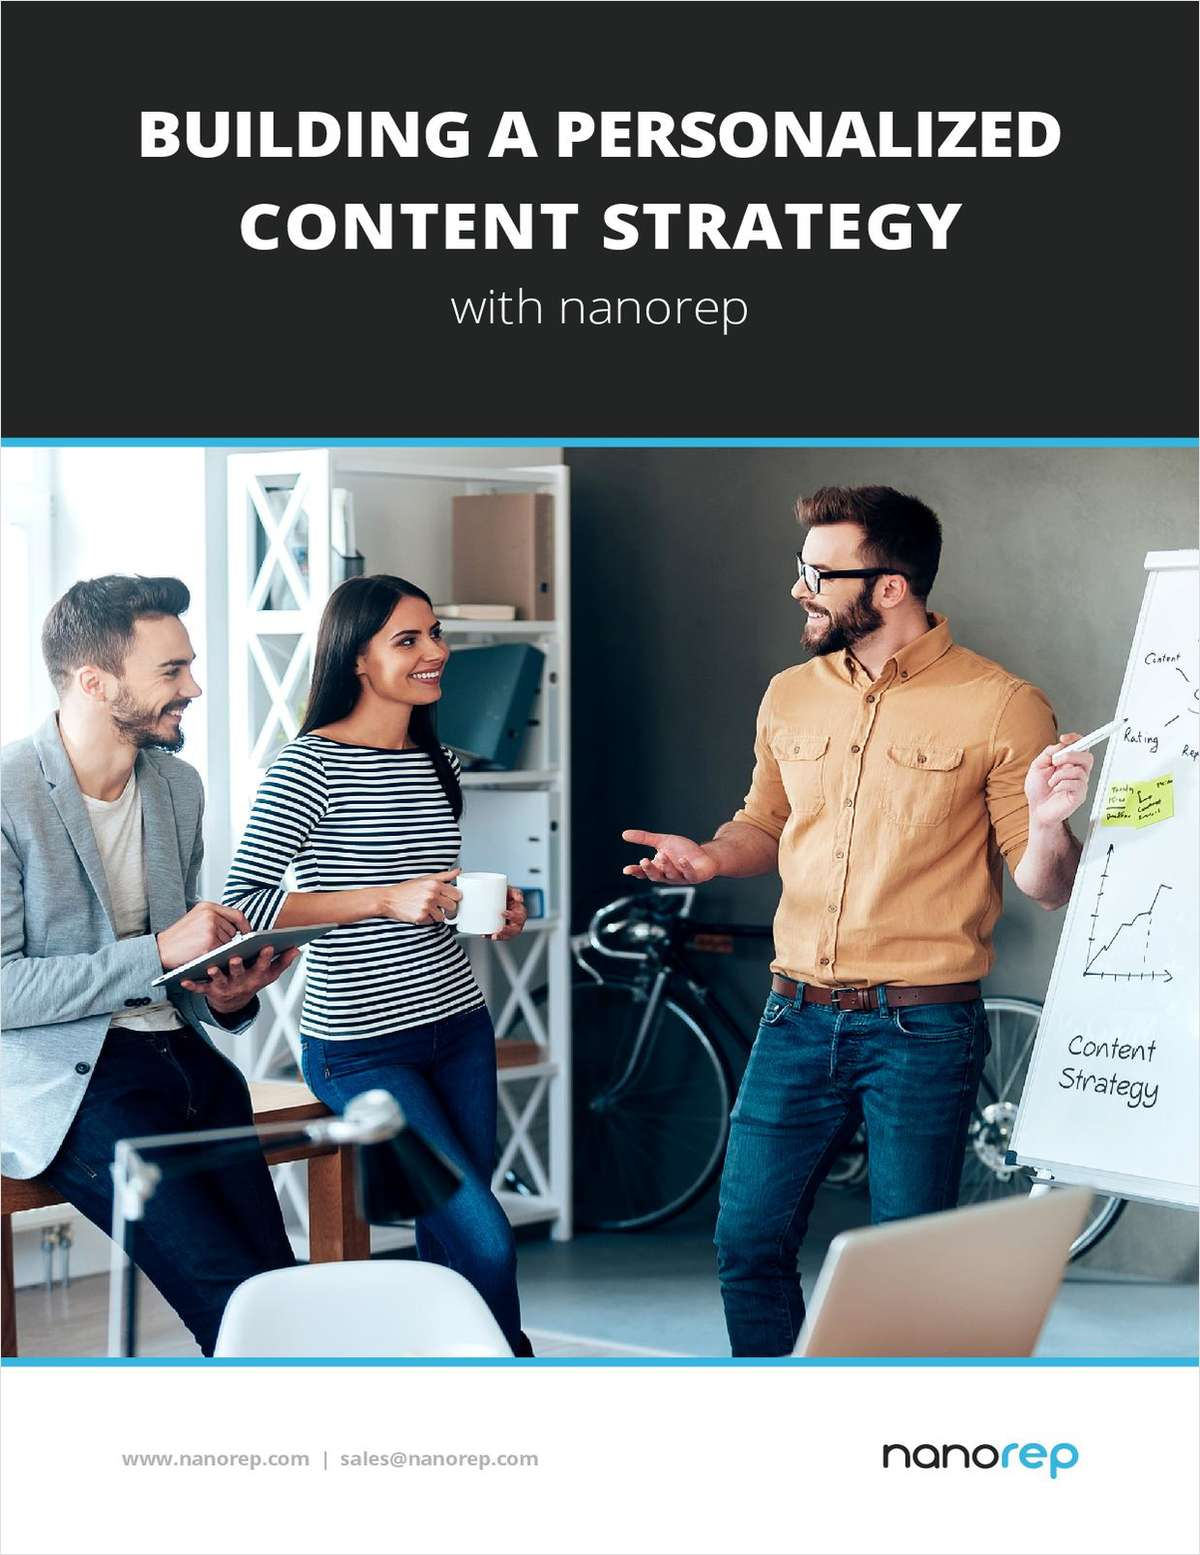 The 4 essentials of a successful Personalized Content Strategy